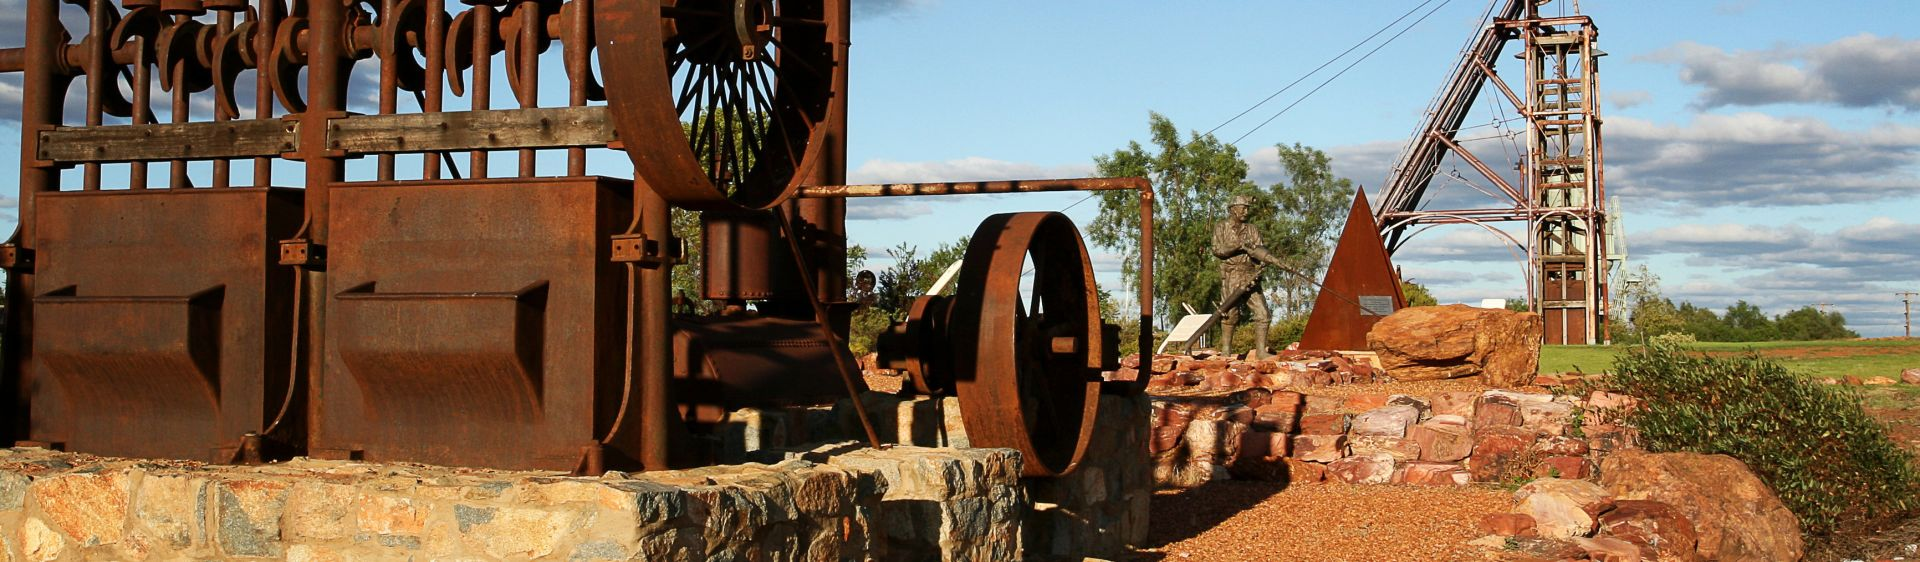 Sculptures at the Cobar Miners Memorial, Outback